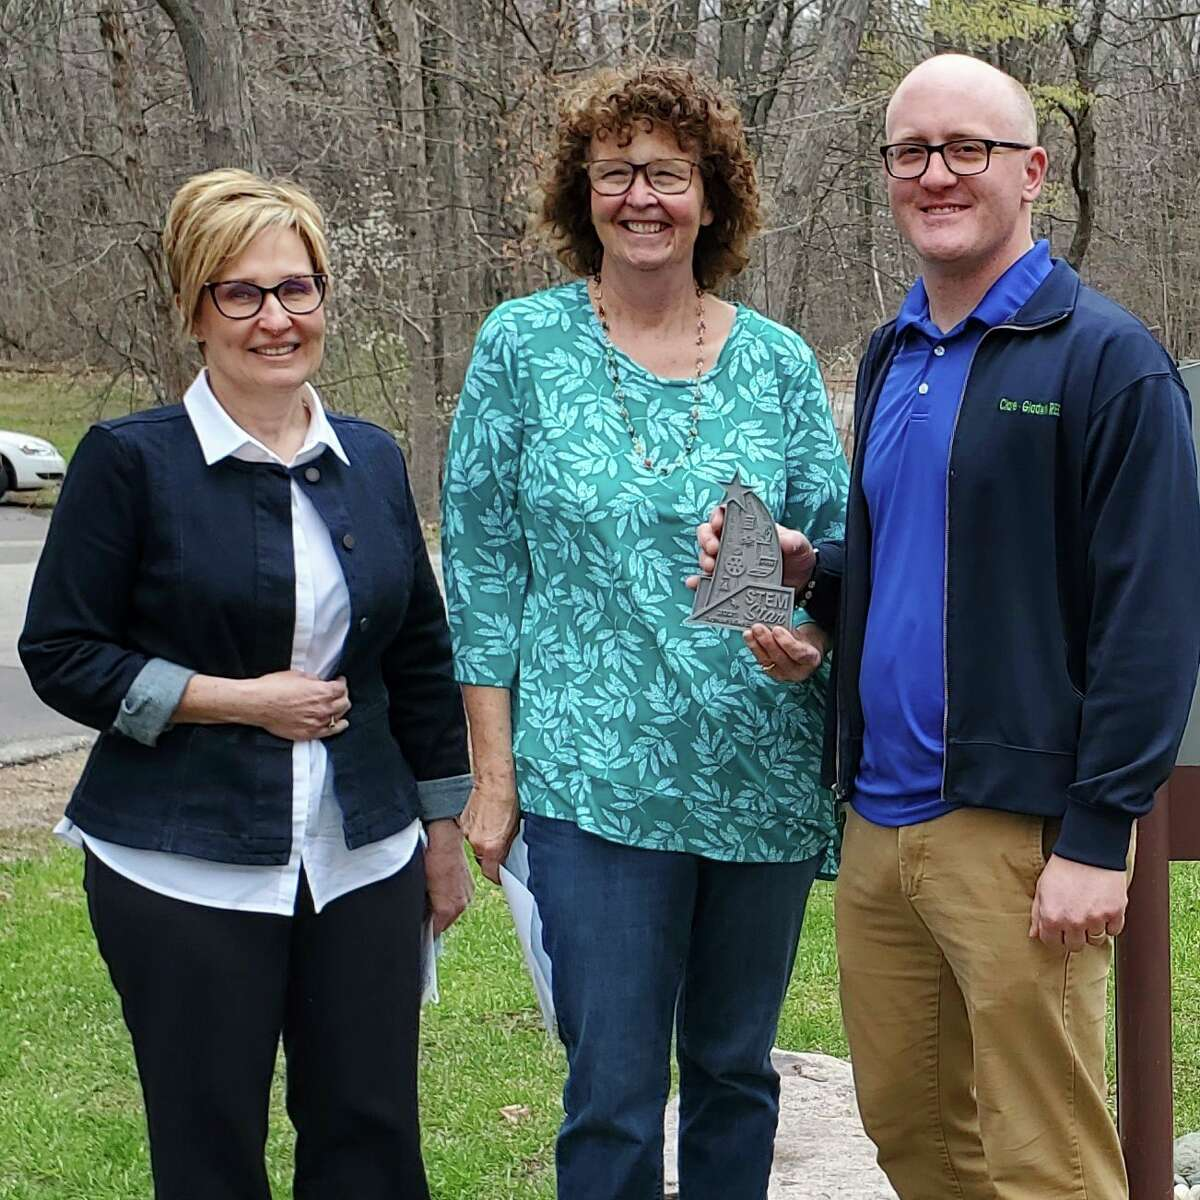 Clare-Gladwin RESD's Joe Trommater, right, is pictured withCGRESD's Deb Snyder, left, andSVSU's Claire Bunker, center.